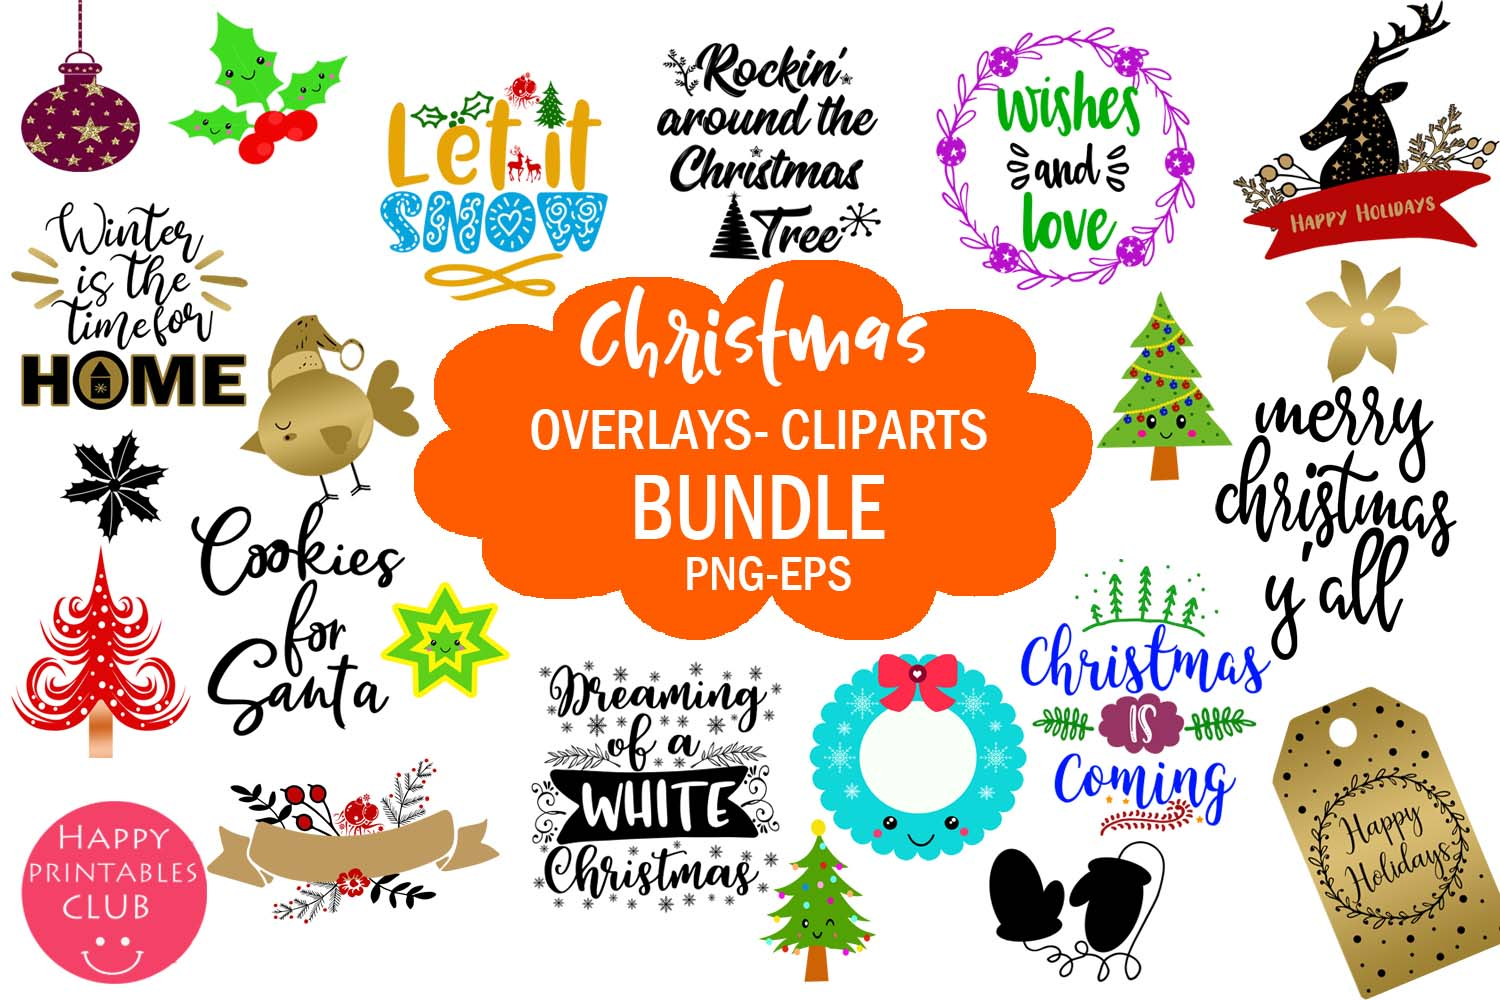 Download Free Christmas Overlays Clipart Bundle Grafik Von Happy Printables for Cricut Explore, Silhouette and other cutting machines.